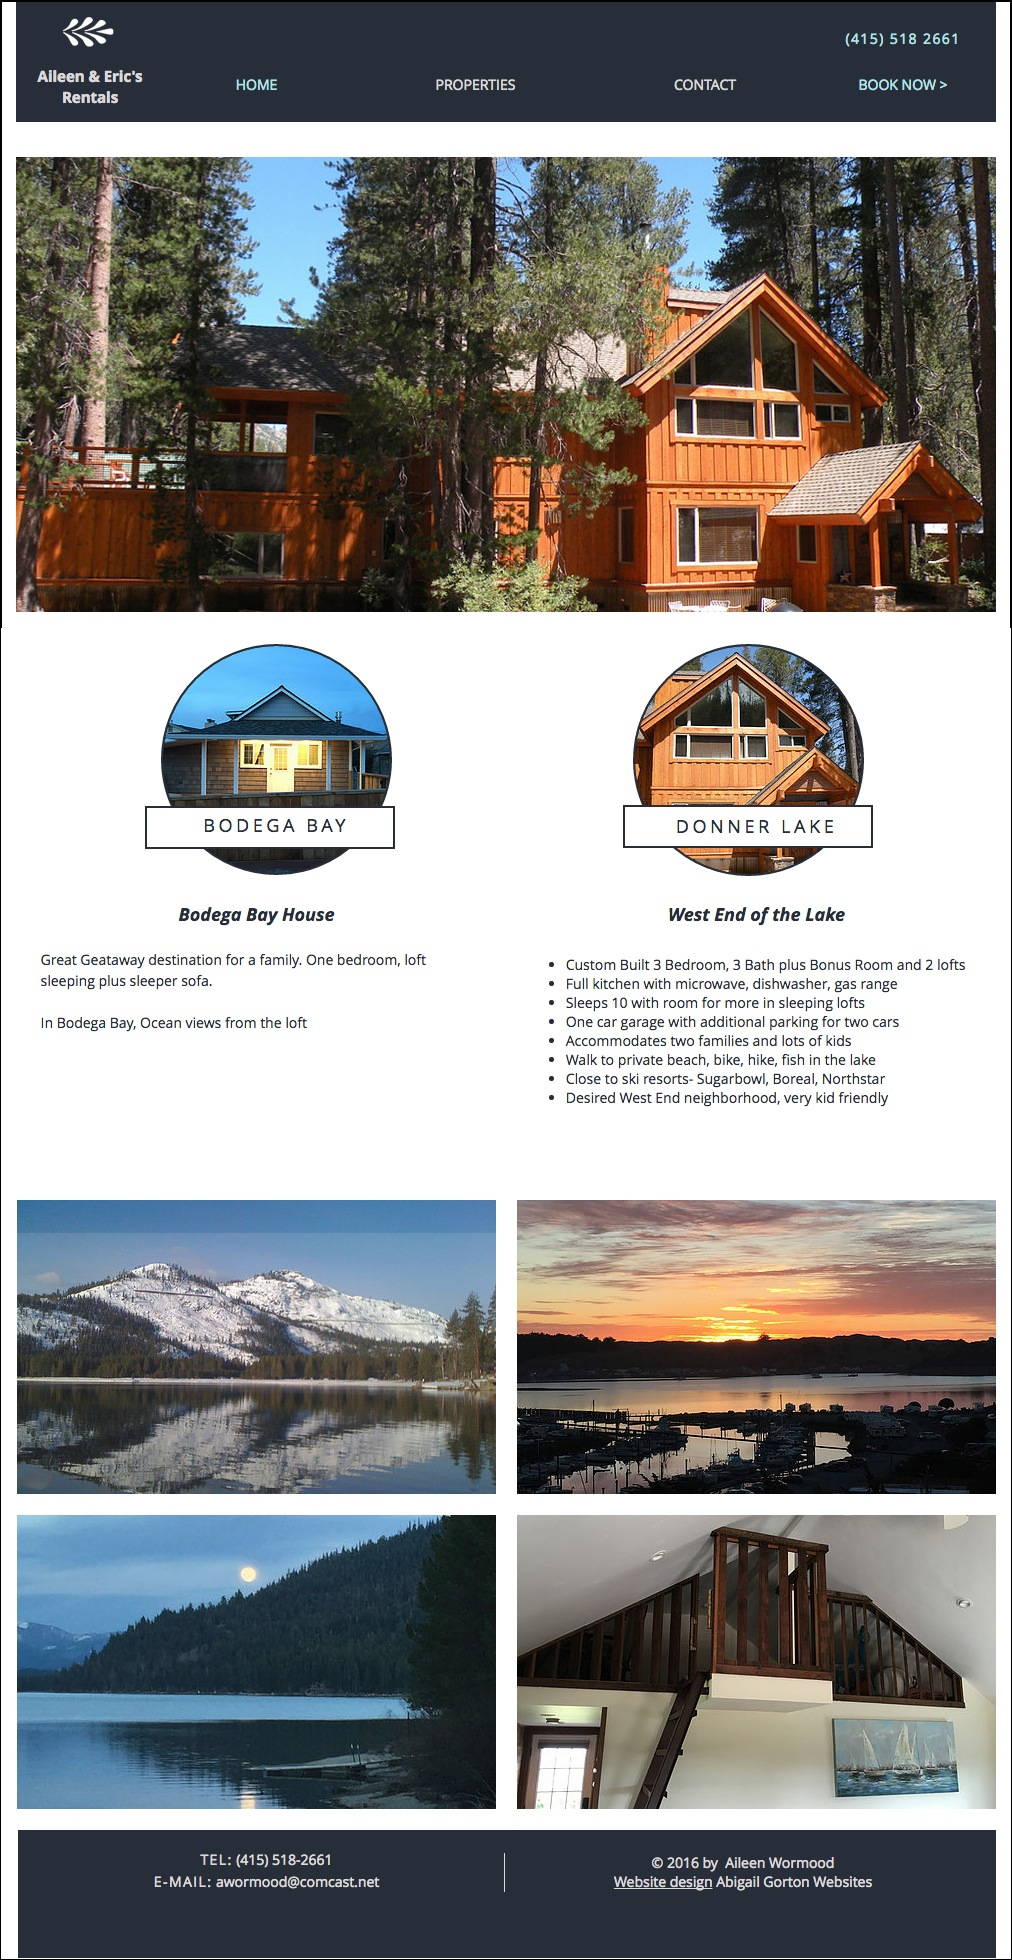 A and E Rentals Home Page